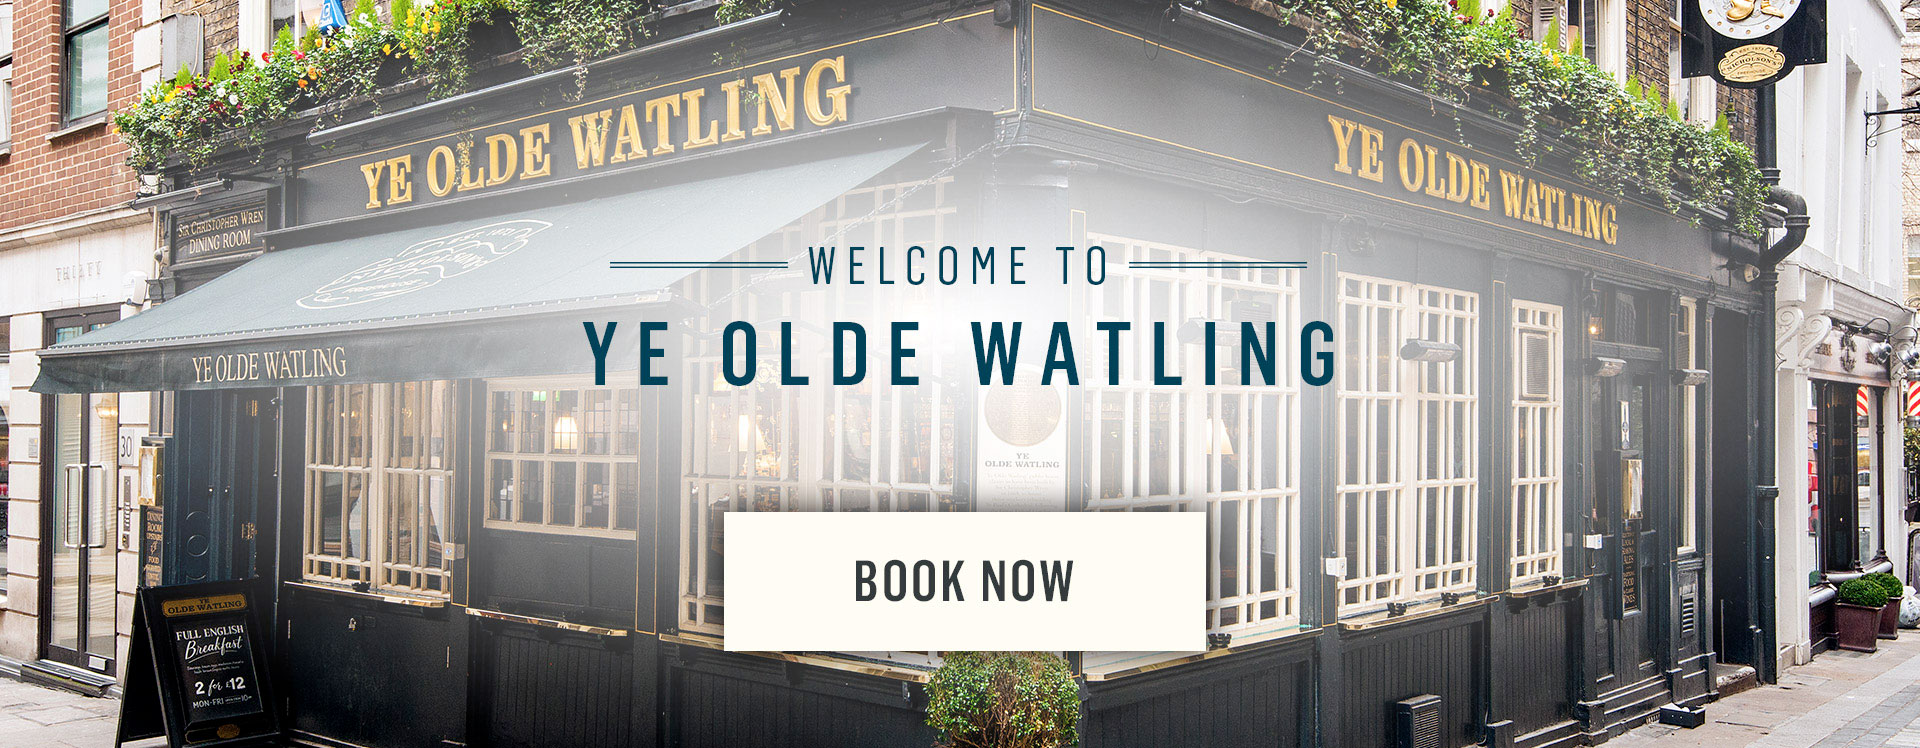 Welcome to Ye Olde Watling - Book Now